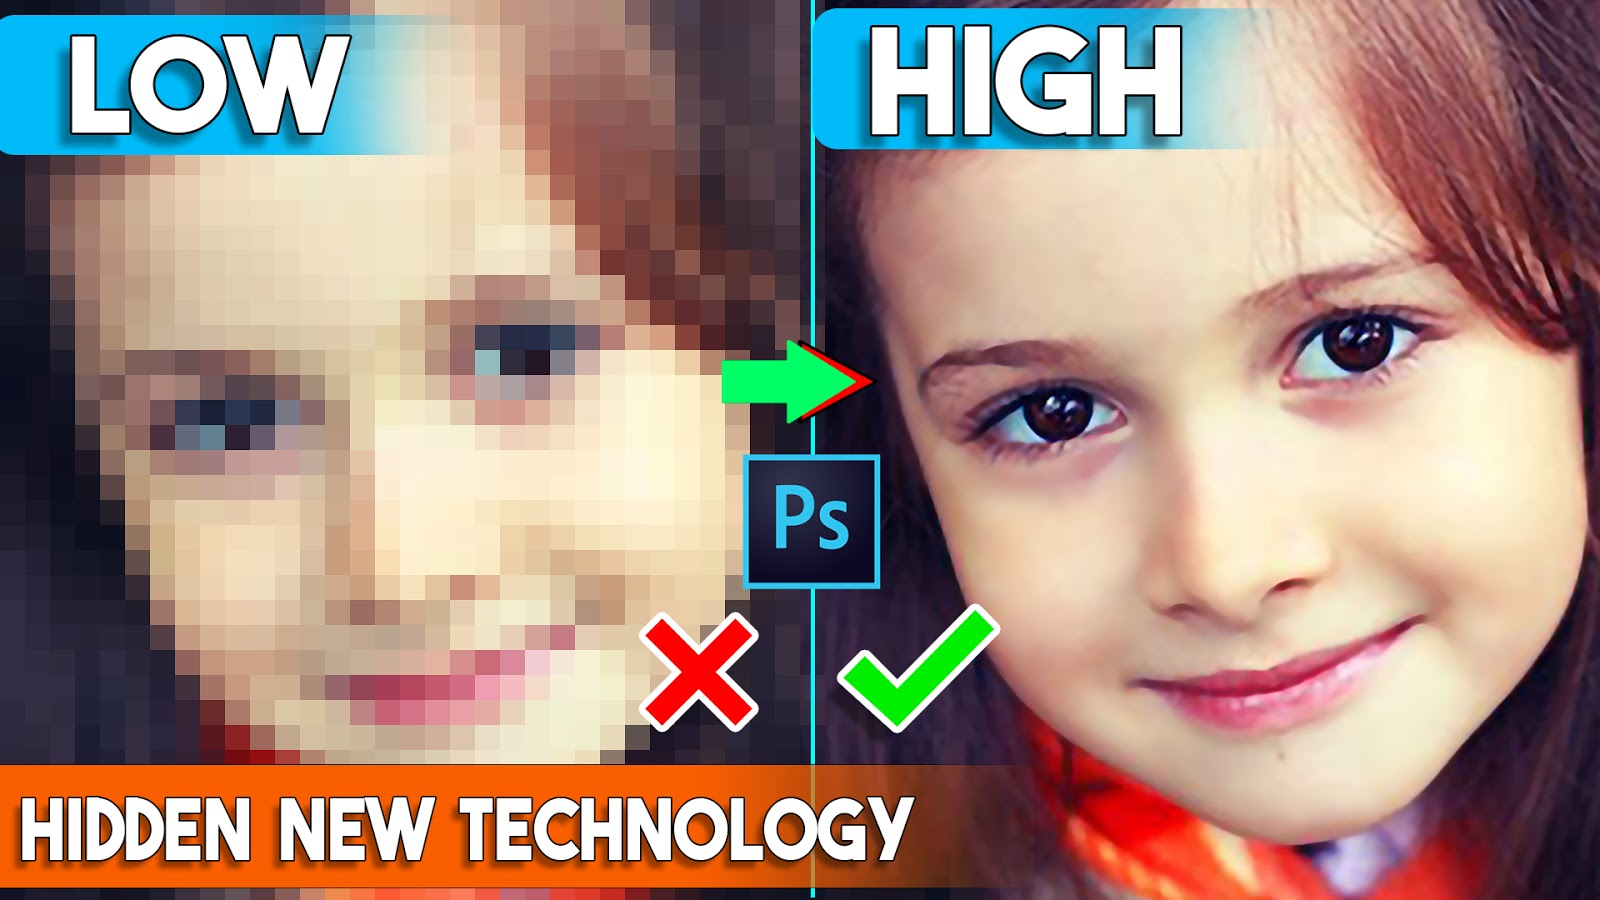 How to depixelate images and Convert into High-Quality Photos